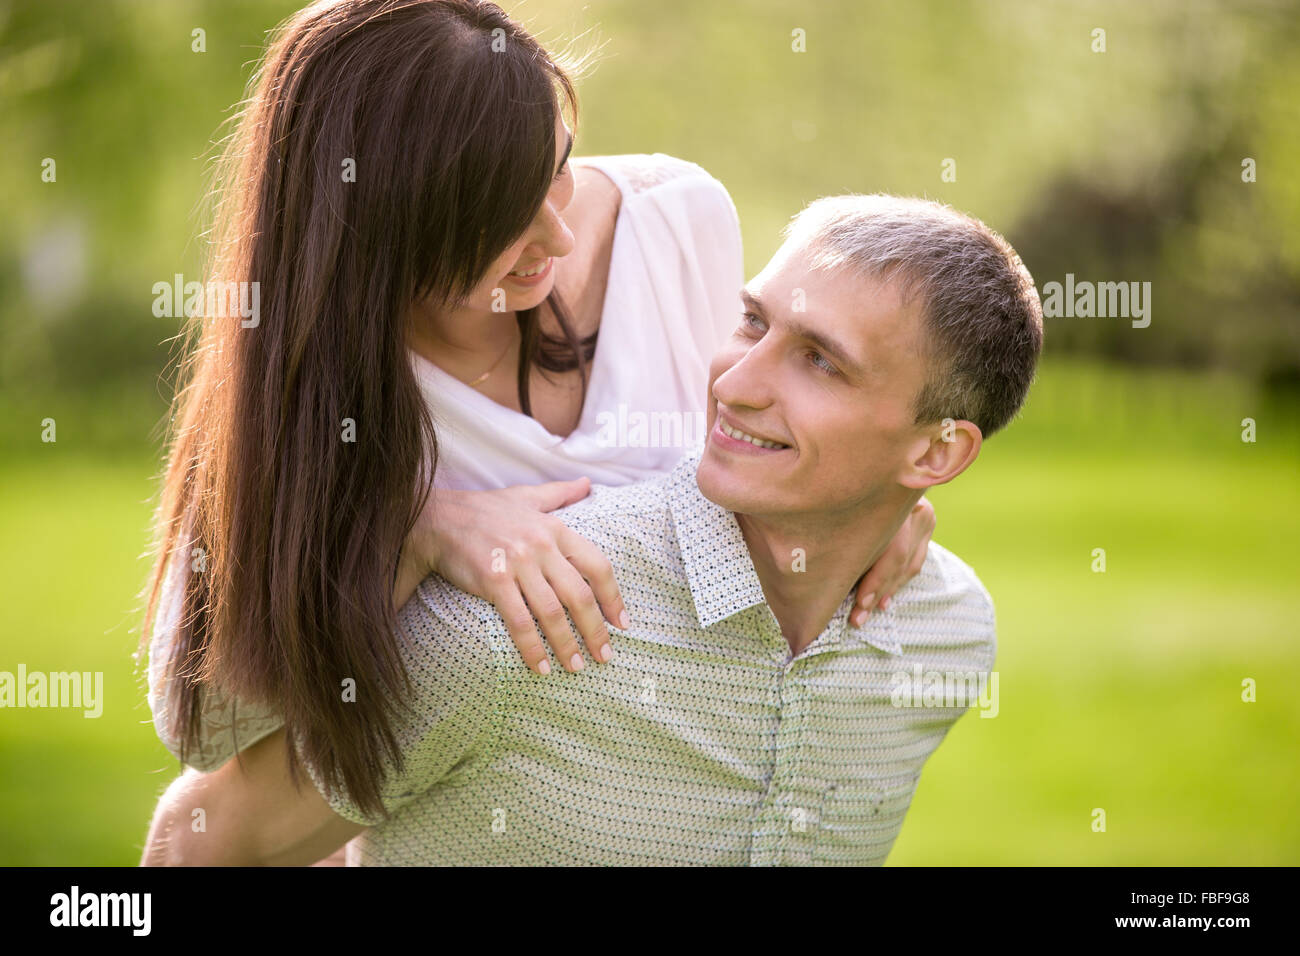 Portrait of happy young man and woman in love on a date, boyfriend giving his beautiful girlfriend playful piggyback - Stock Image